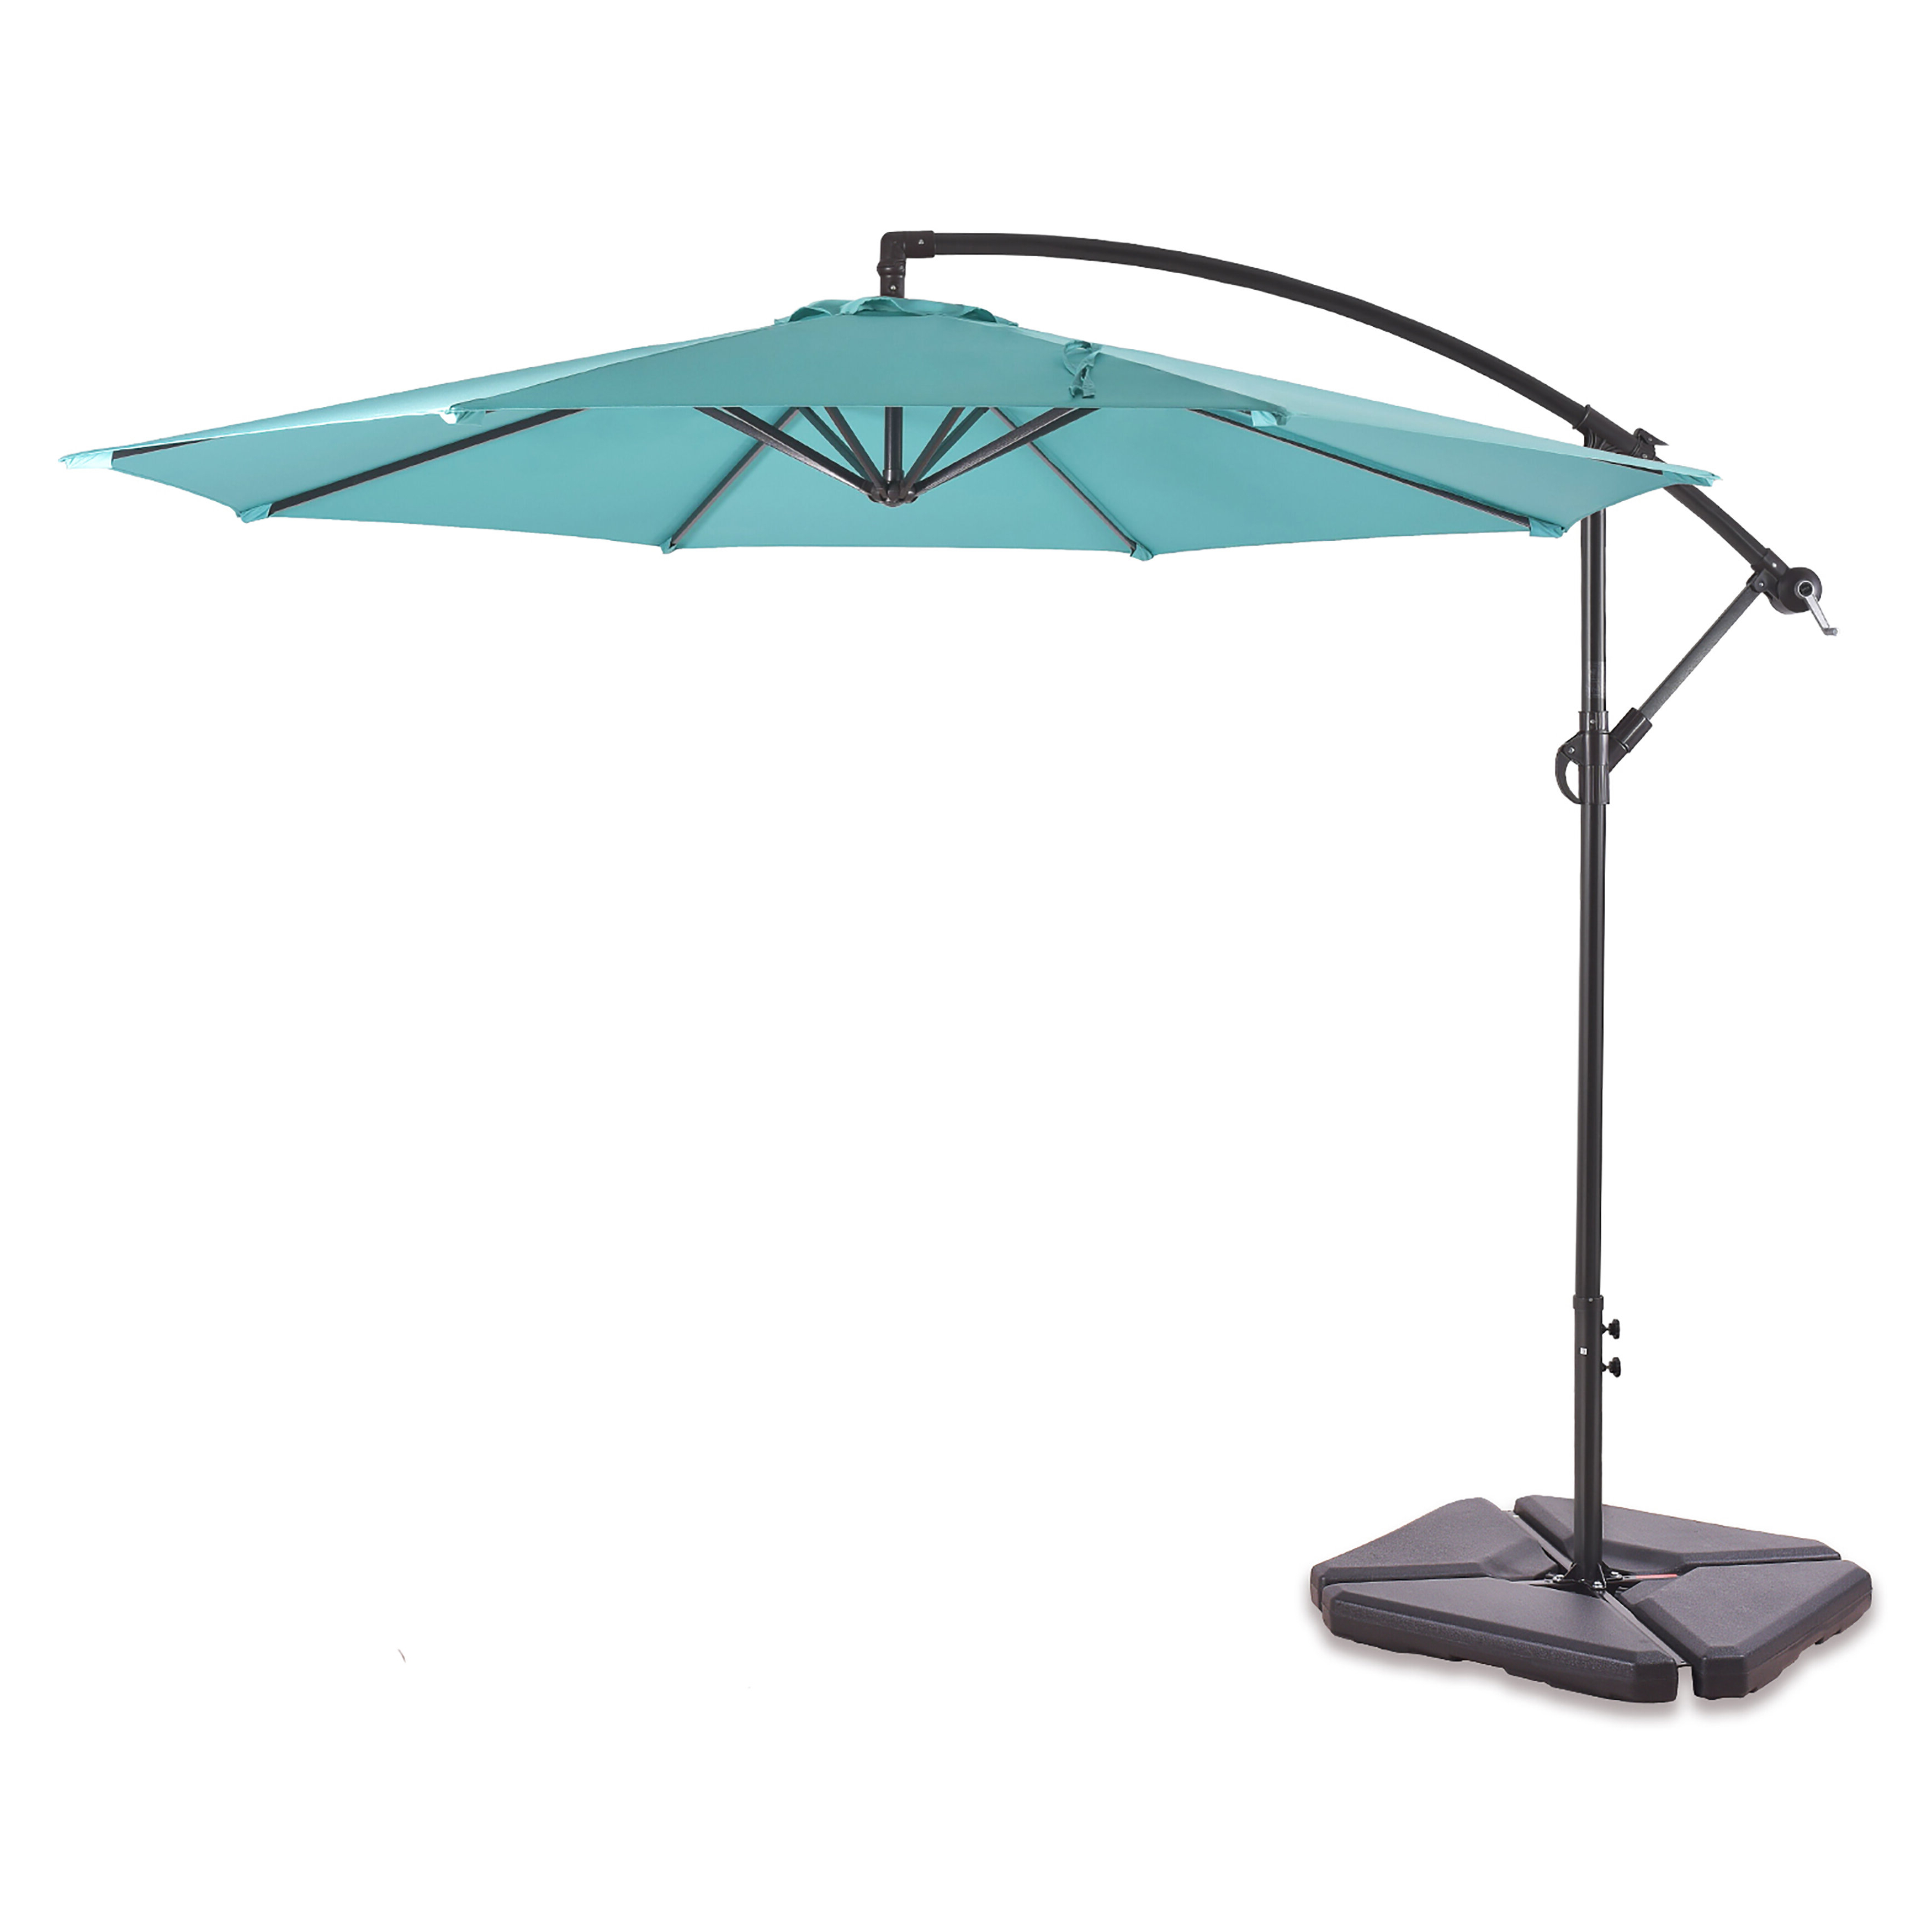 Most Up To Date Muhammad Fullerton Cantilever Umbrellas Pertaining To Karr 10' Cantilever Umbrella (Gallery 8 of 20)